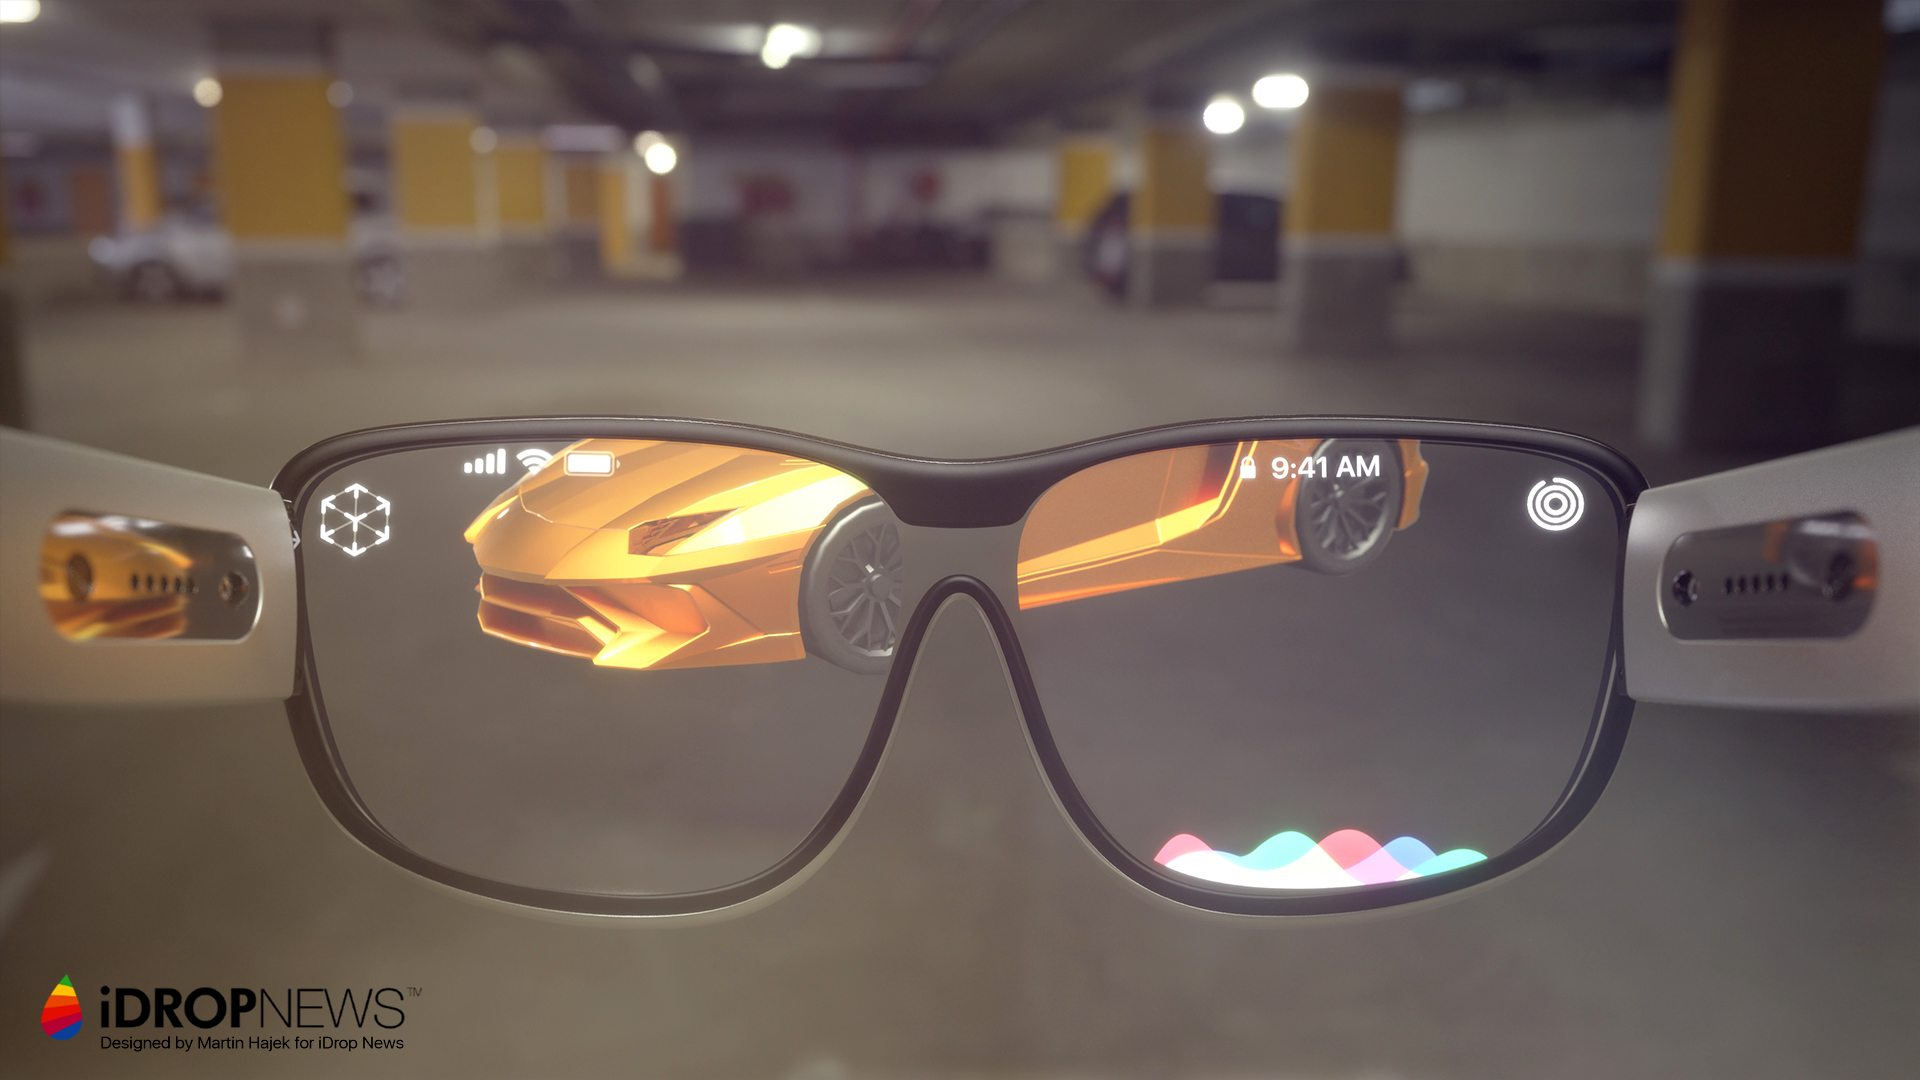 Apple Glasses: AR Revolution in the Making